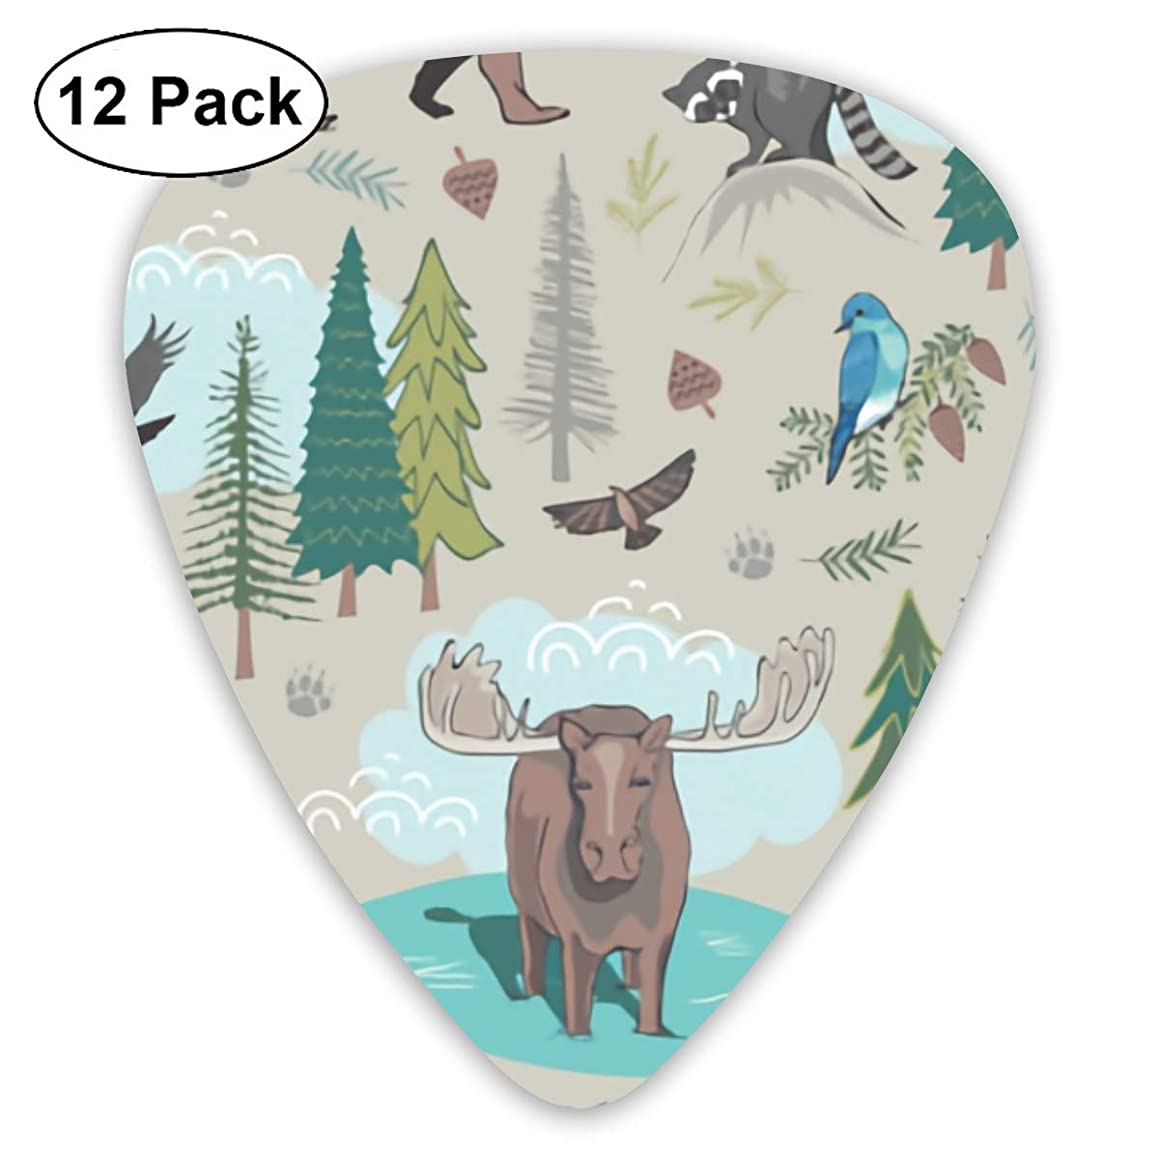 Little Bear Behind Bendy Ultra Thin 0.46 Med 0.73 Thick 0.96mm 4 Pieces Each Base Prime Plastic Jazz Mandolin Bass Ukelele Guitar Pick Plectrum Display